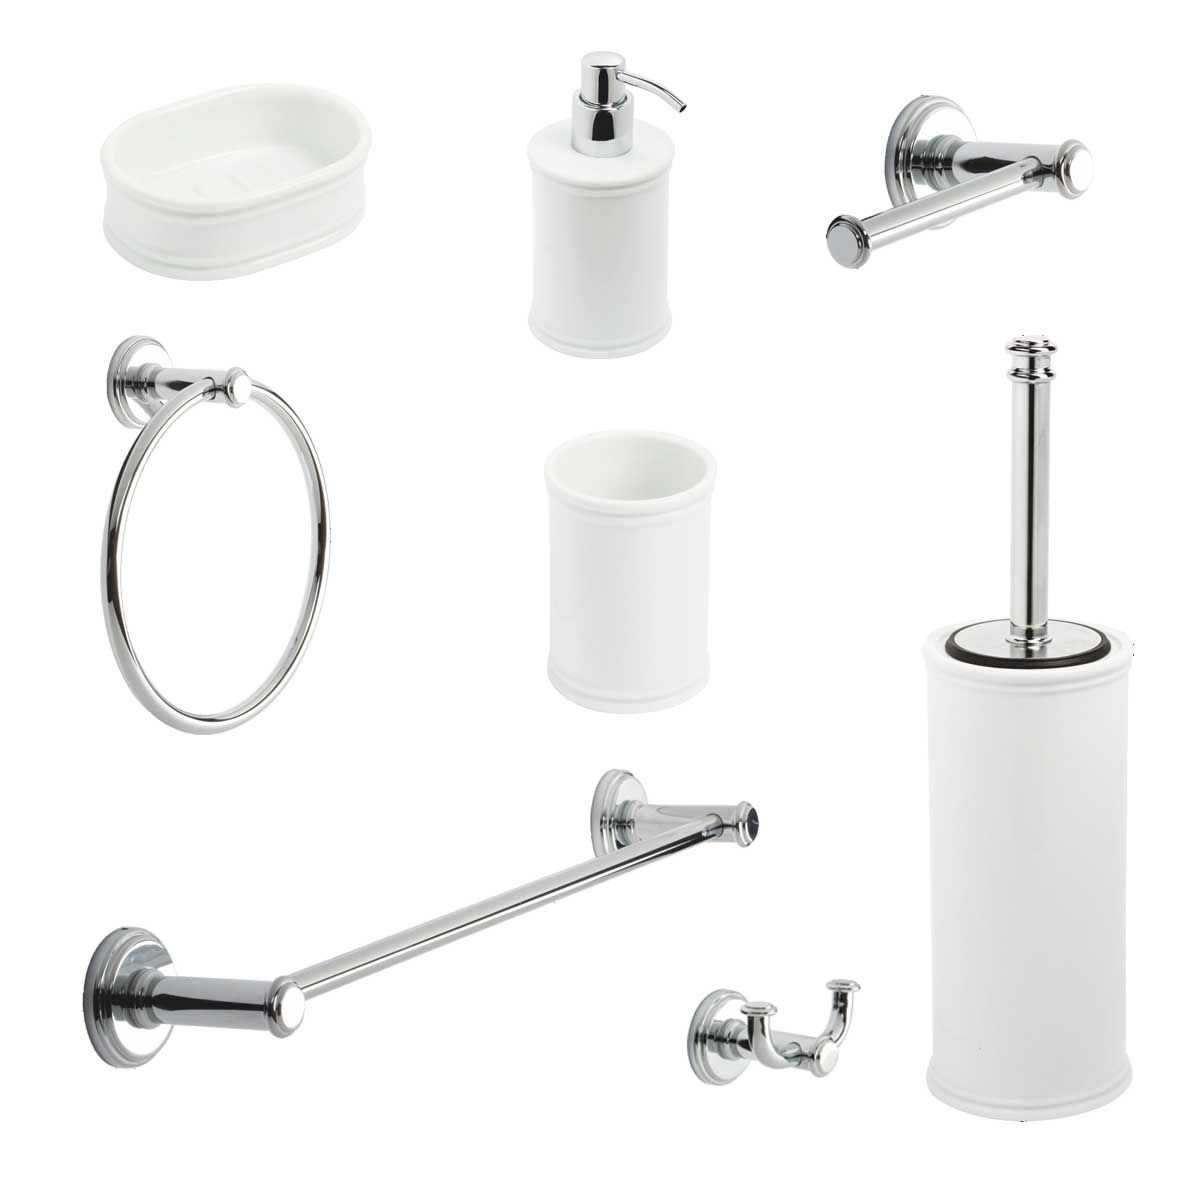 Kit accessori bagno impero 8 pezzi metaform for Accessori lavandino bagno